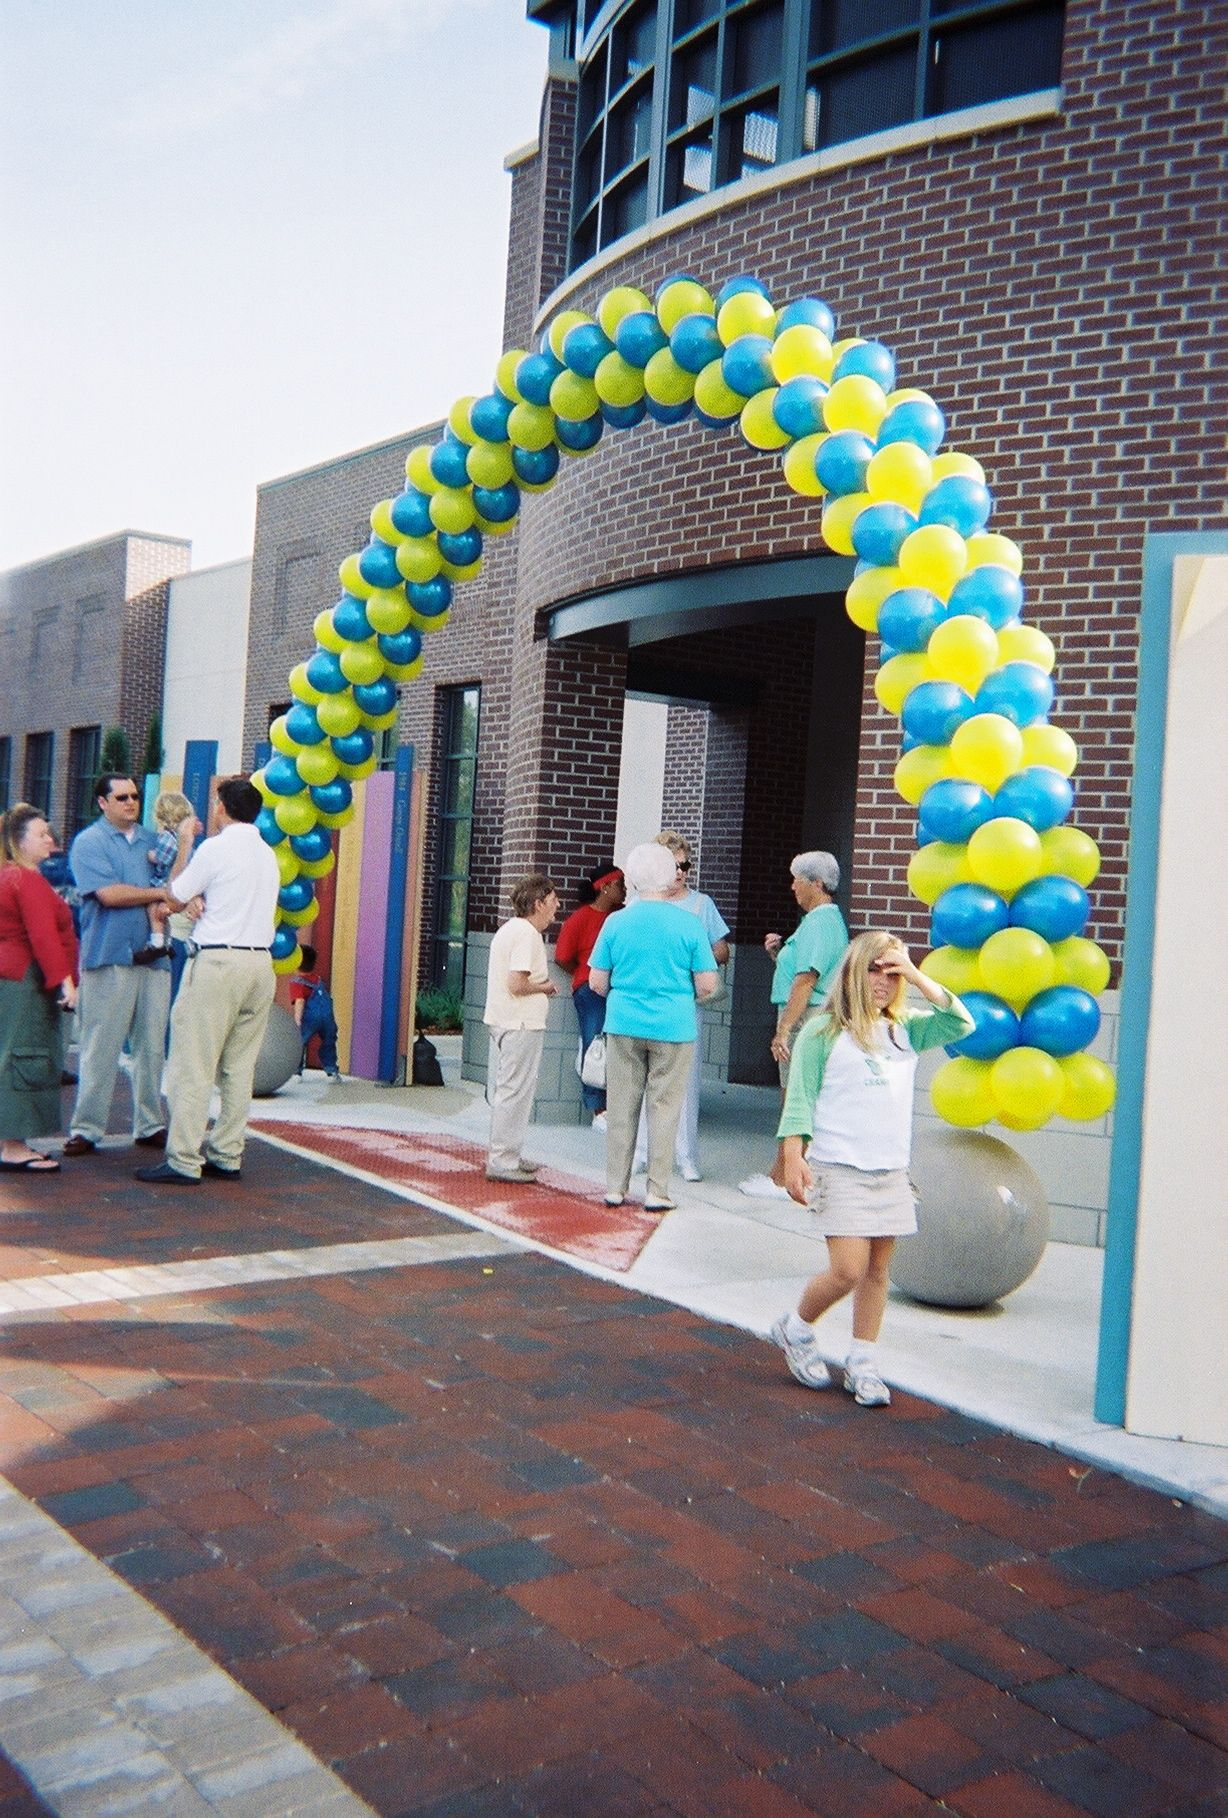 Jacksonville public library grand opening!  #balloon#Arch